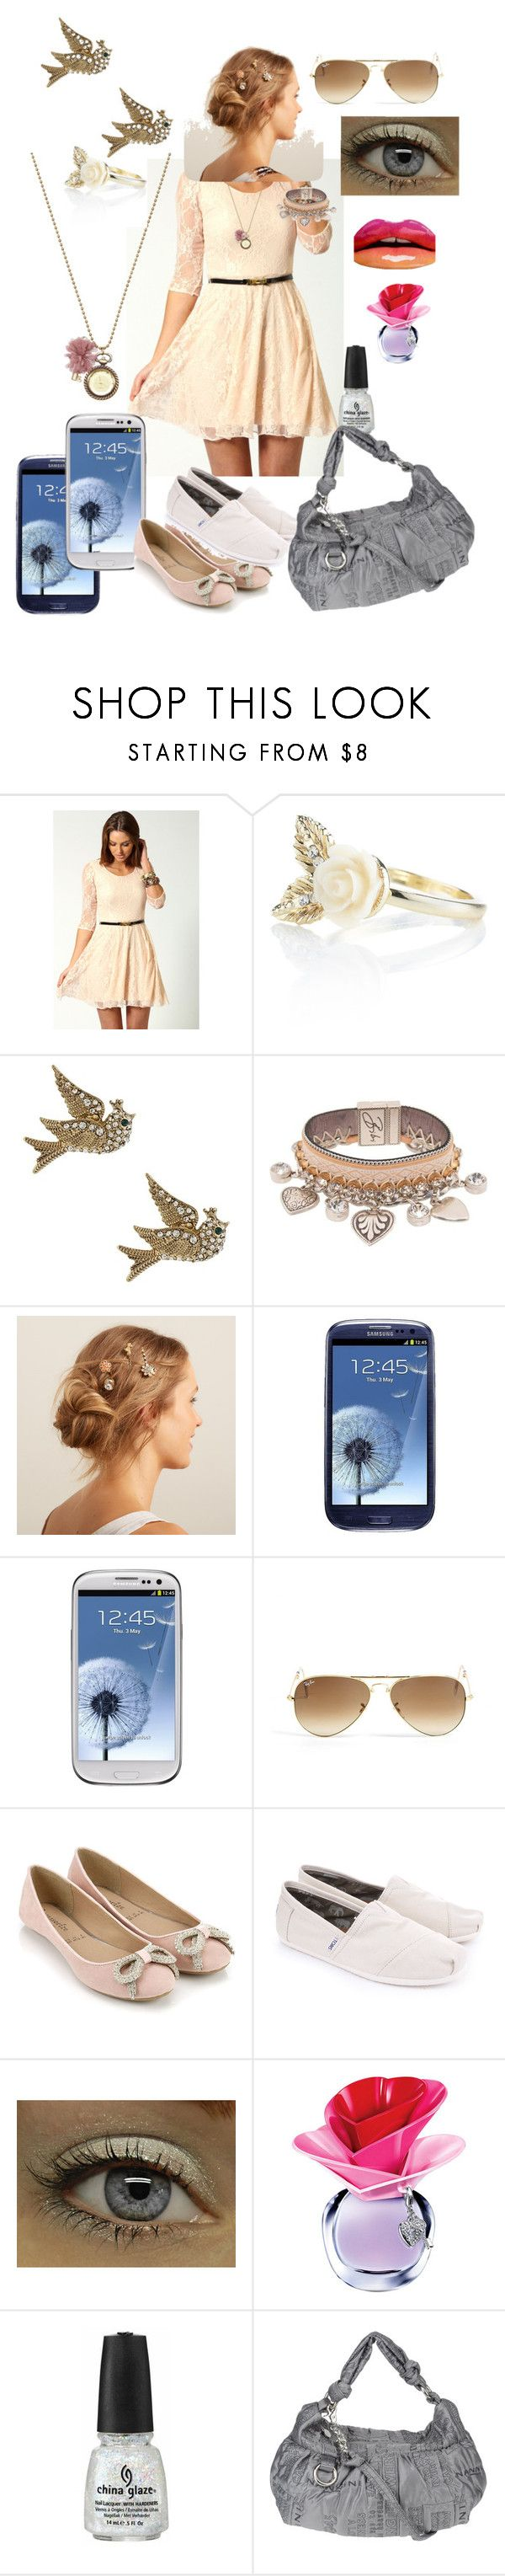 """""""First Date"""" by miss-smilee ❤ liked on Polyvore featuring Boohoo, Accessorize, Betsey Johnson, Bibi Bijoux, Mimco, Samsung, Ray-Ban, TOMS, Justin Bieber and China Glaze"""